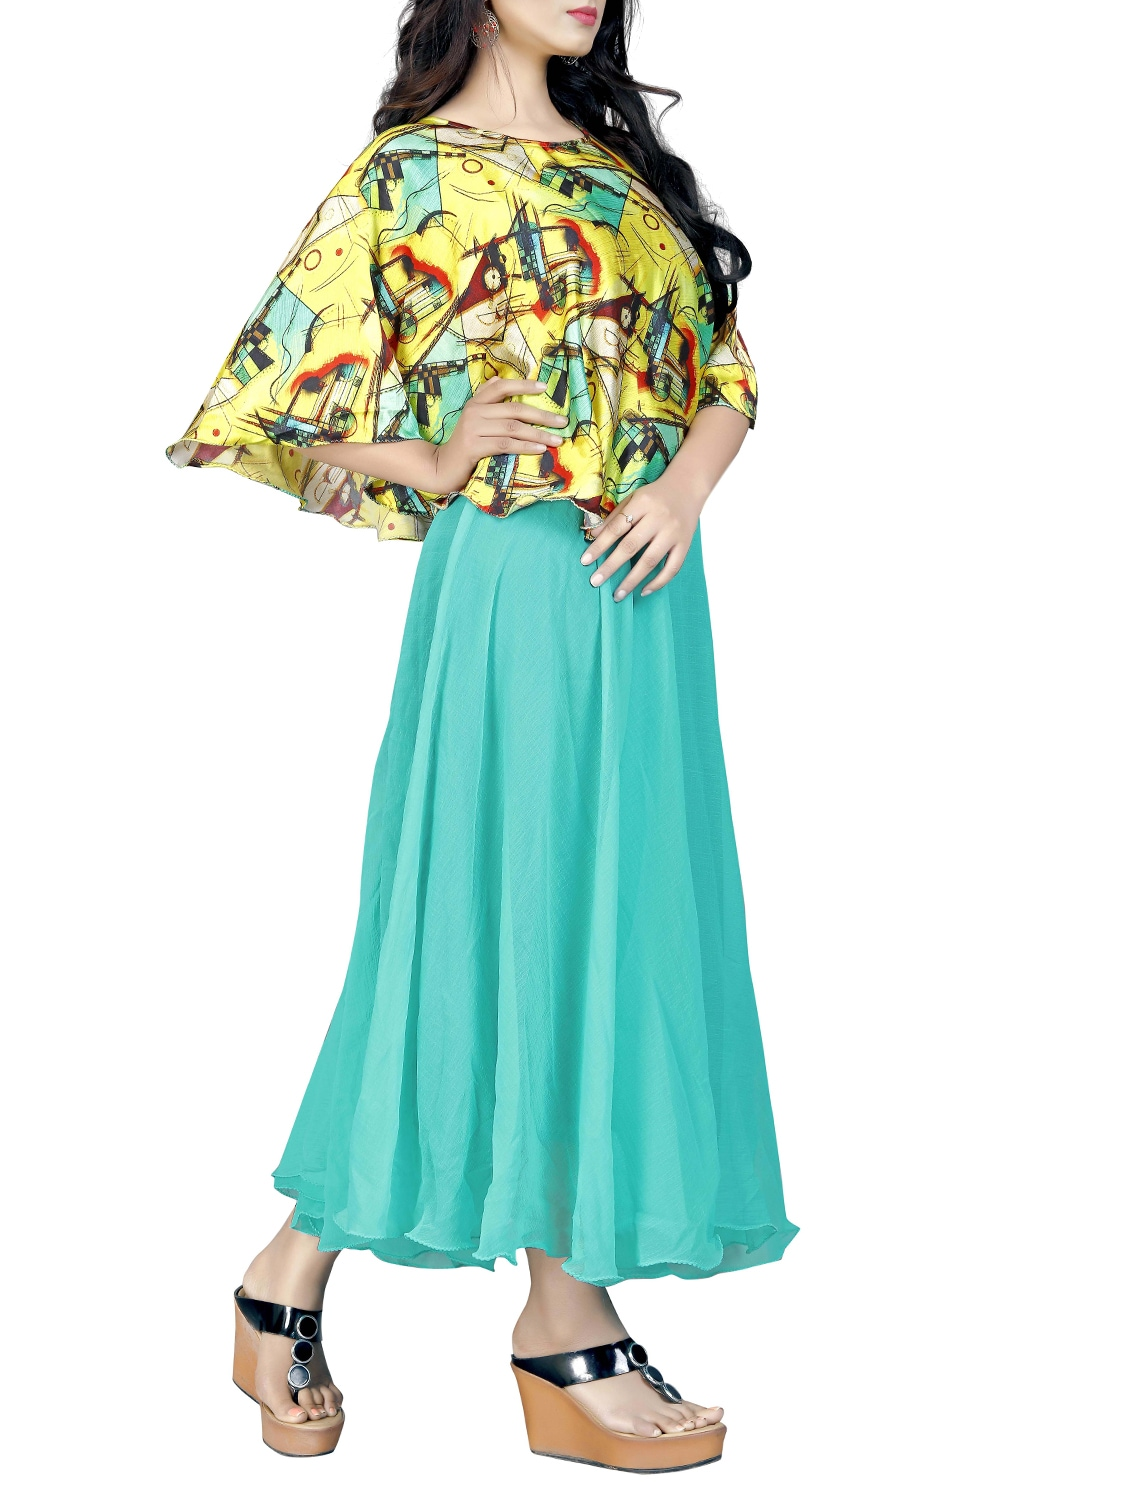 6bc10aa0f9 Buy Yellow Printed Layered Maxi Dress for Women from Hsfs for ₹975 at 35%  off